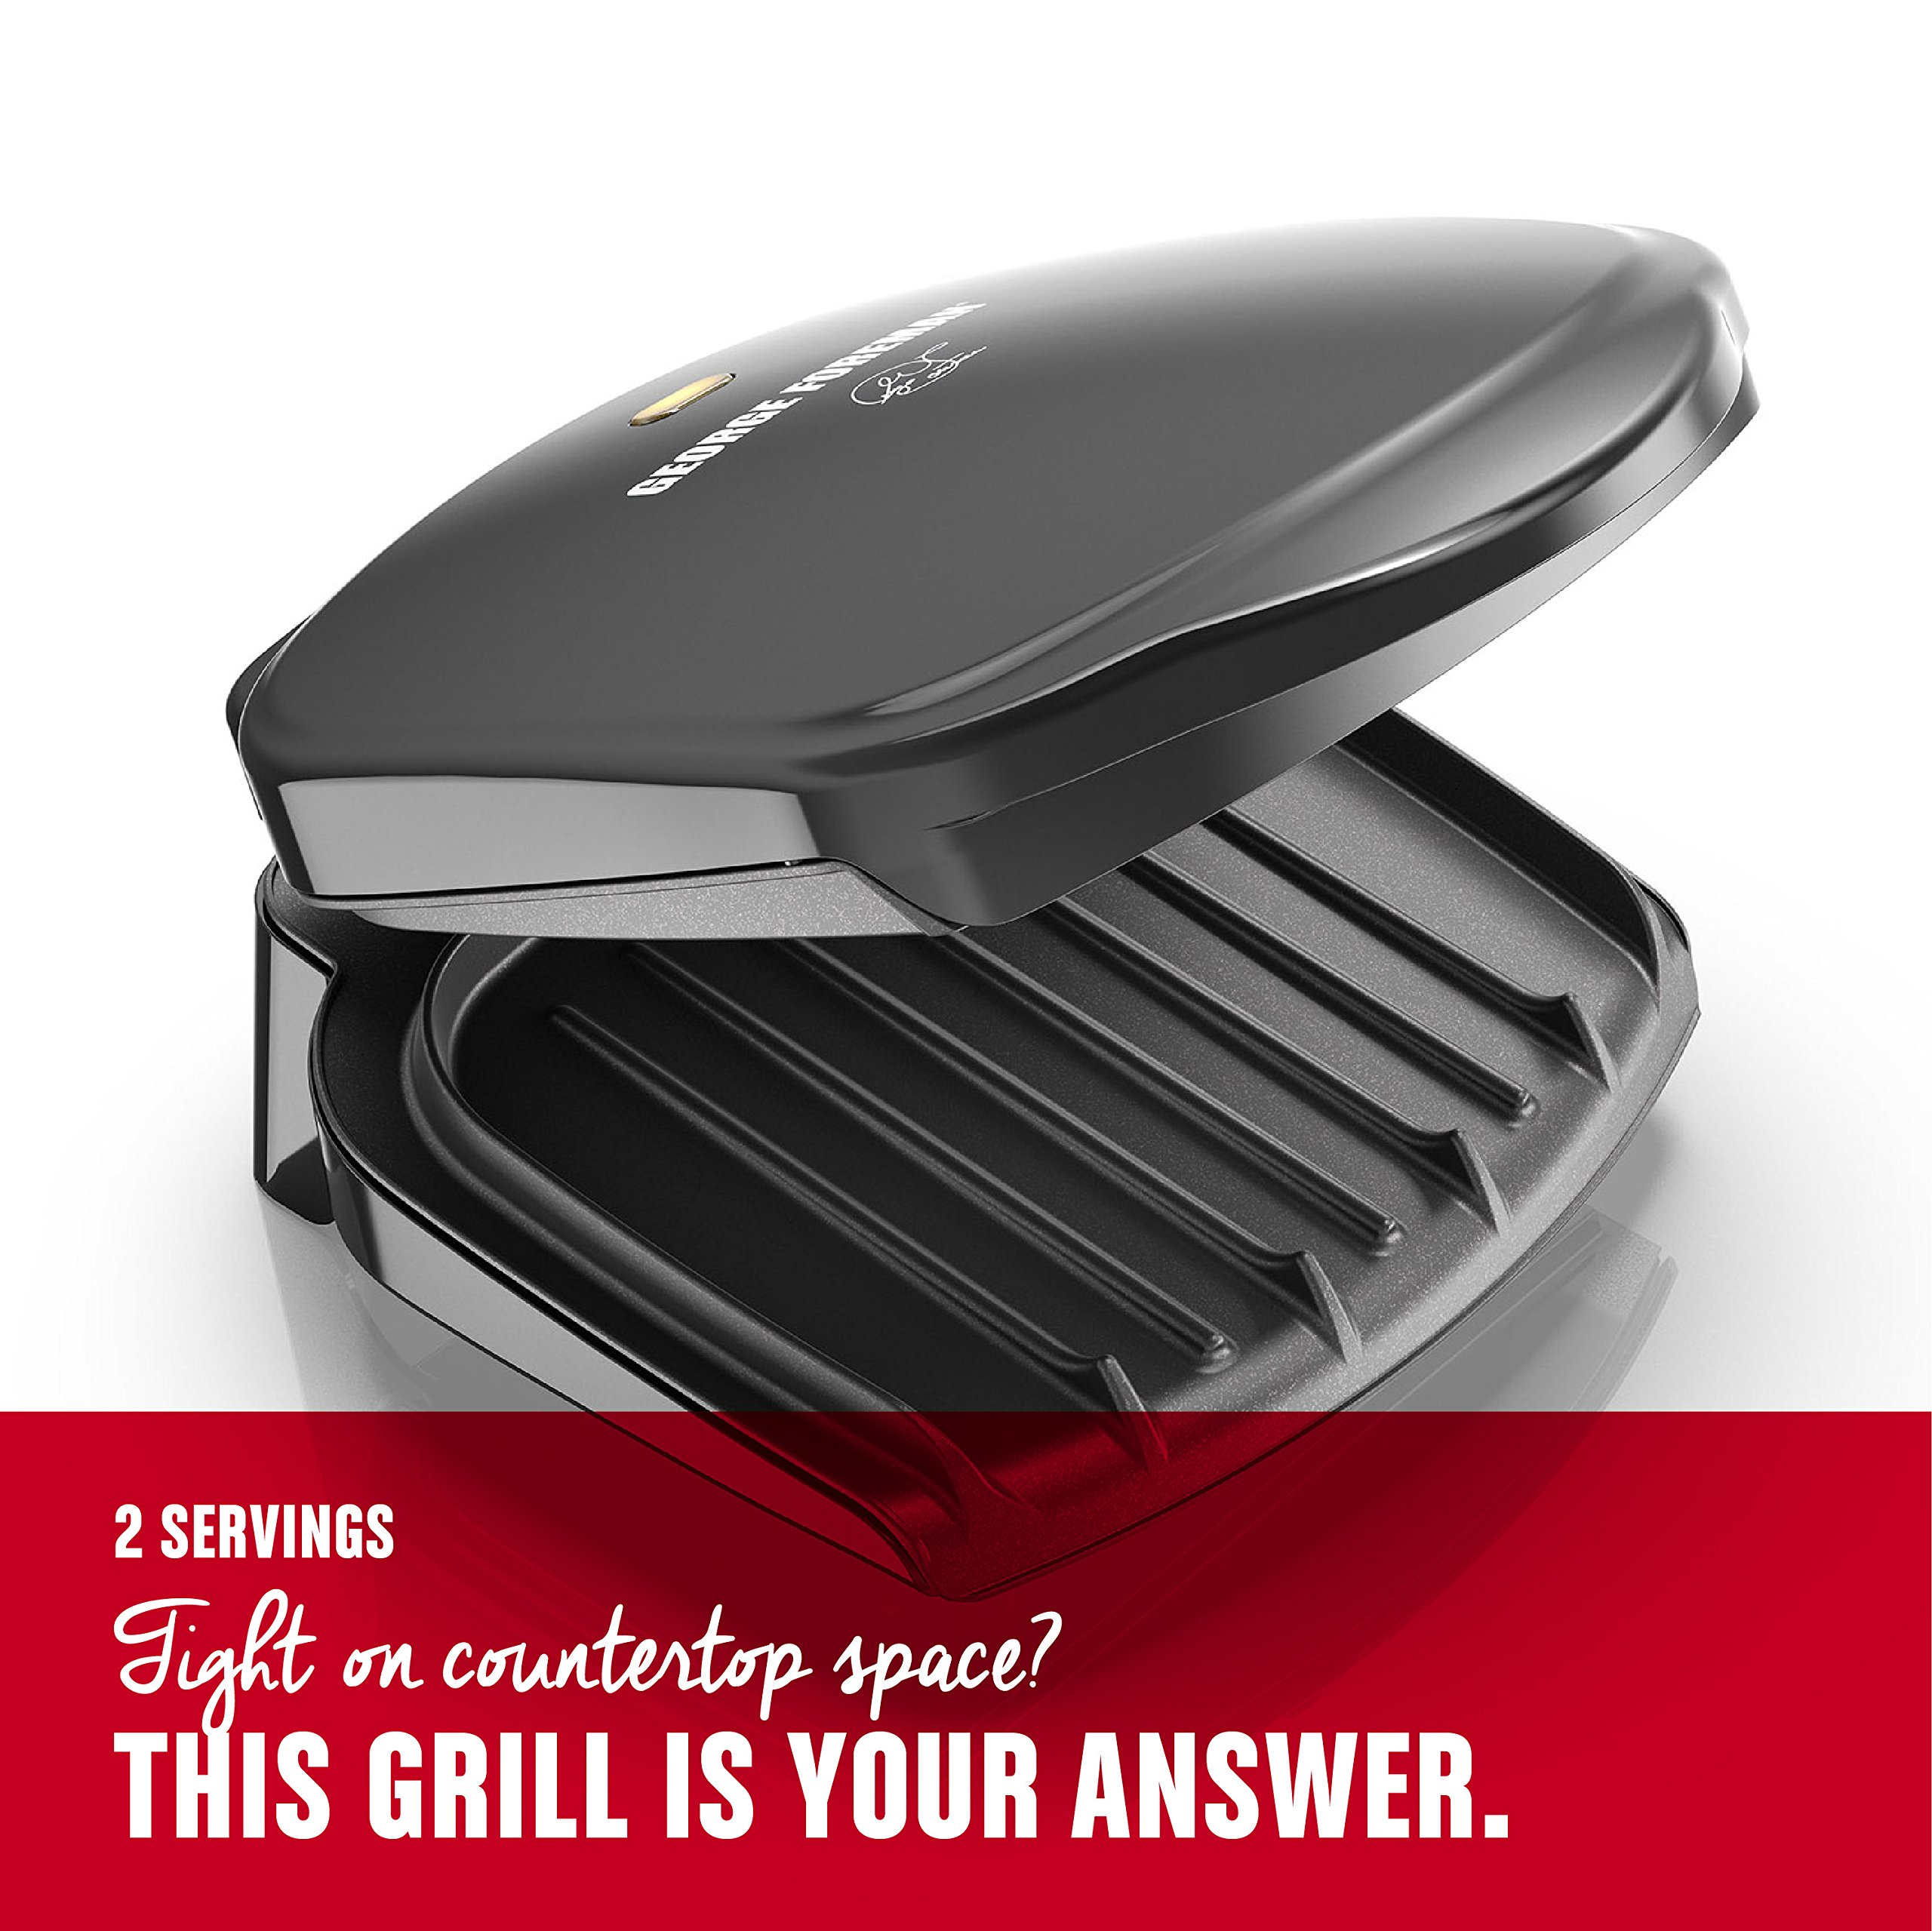 George Foreman 2-Serving Classic Plate Electric Indoor Grill and Panini Press, Black, GR10B by George Foreman (Image #3)